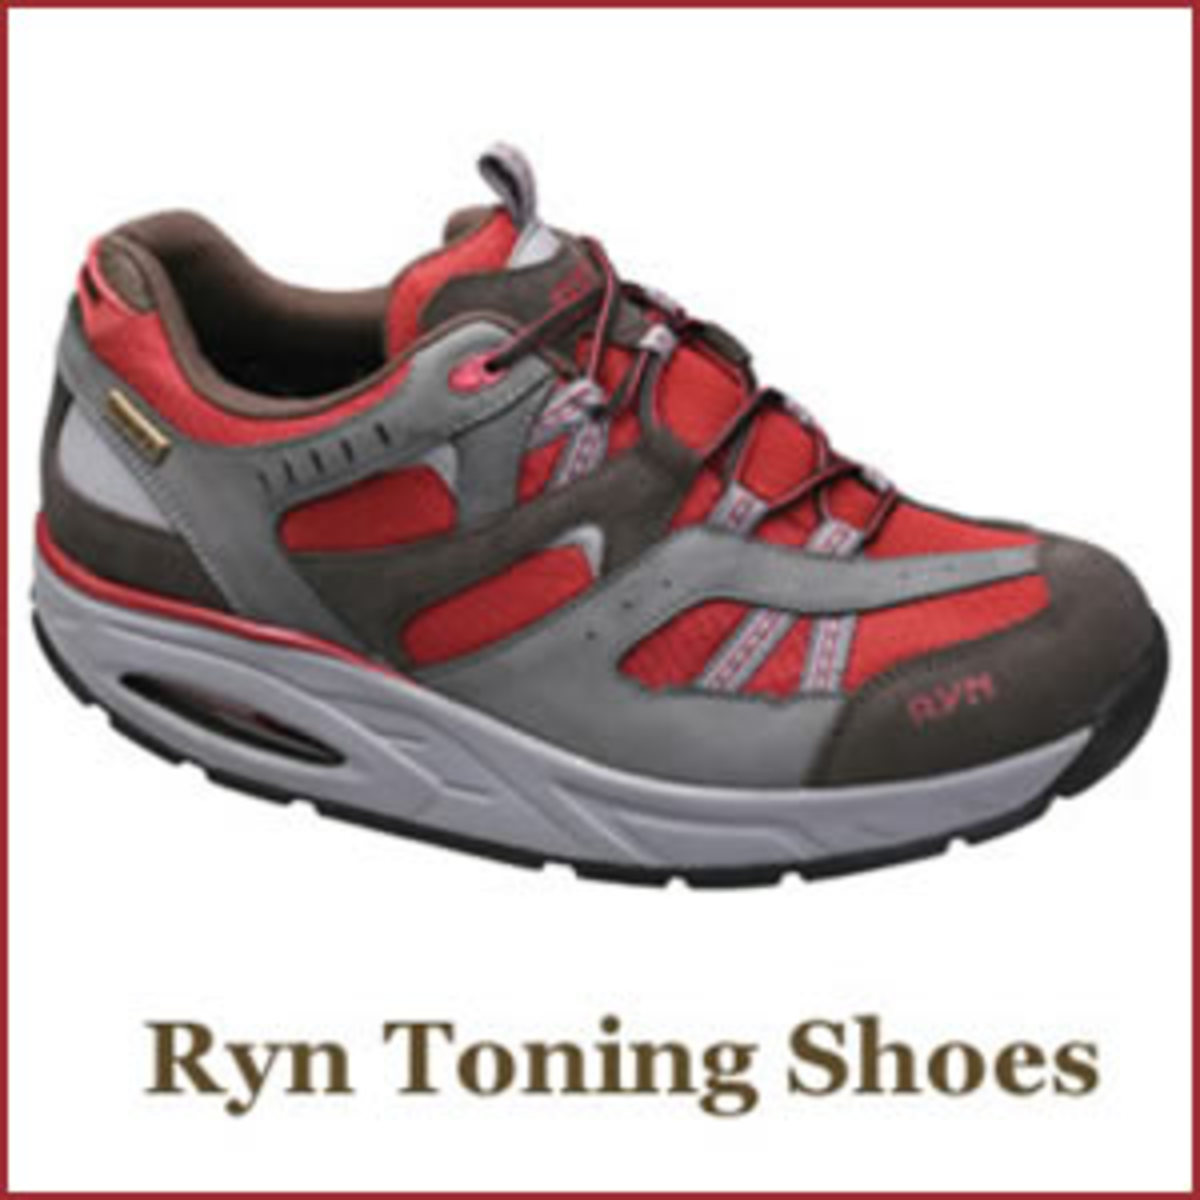 toning-shoe-comparison-guide-which-toning-shoes-are-best